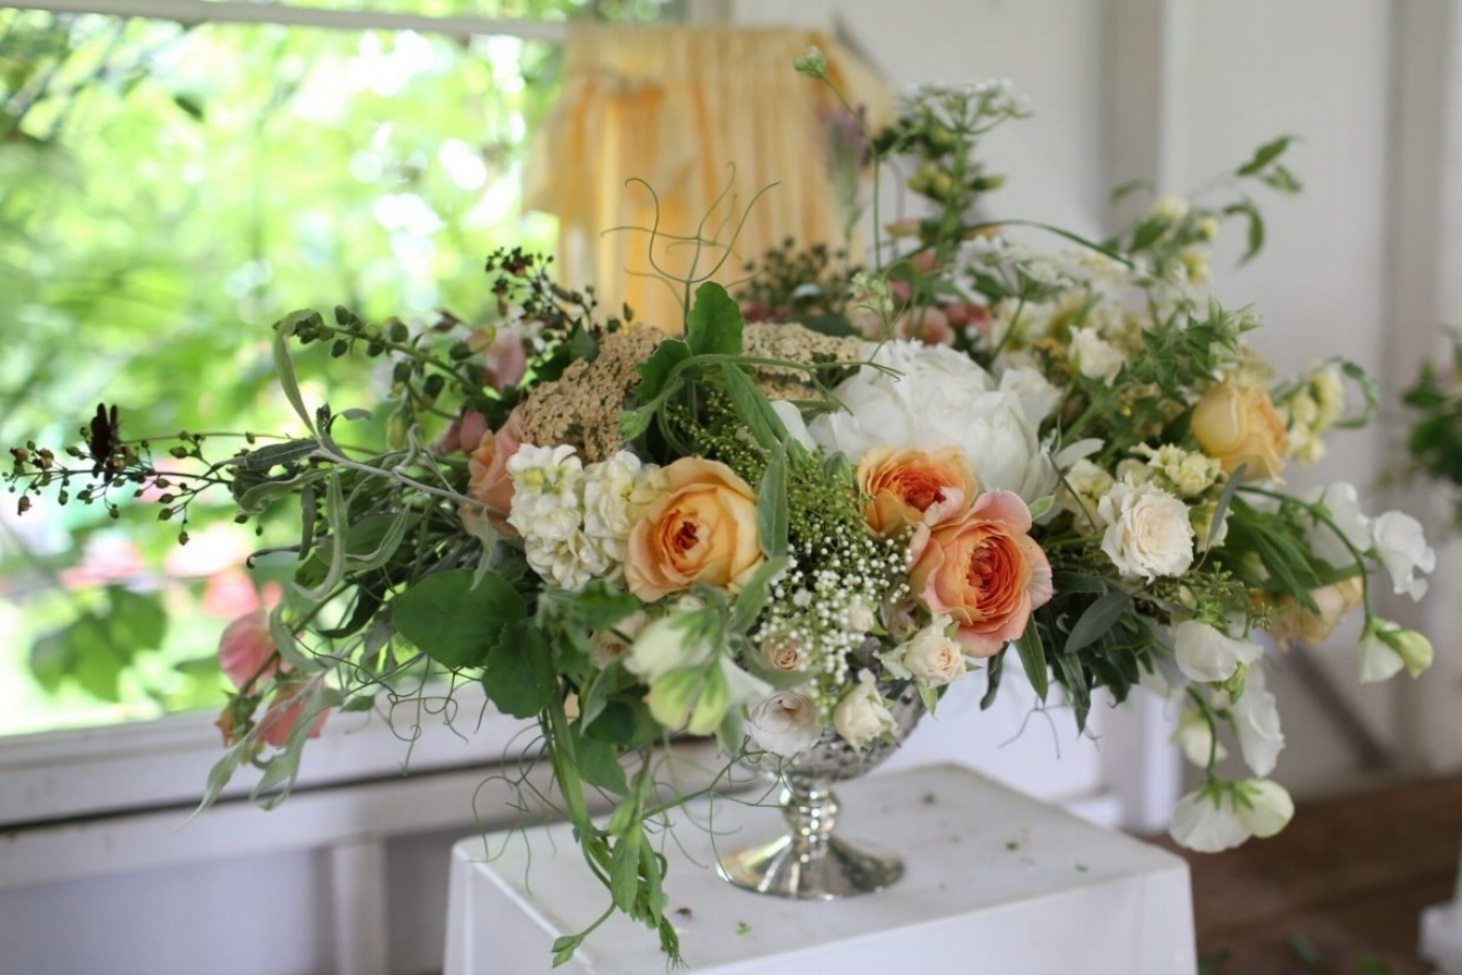 Statement Piece - $160.00/ea - Large, dramatic arrangement, perfect as a pair to frame the front of ceremony or alone on display table. Measures 28-32